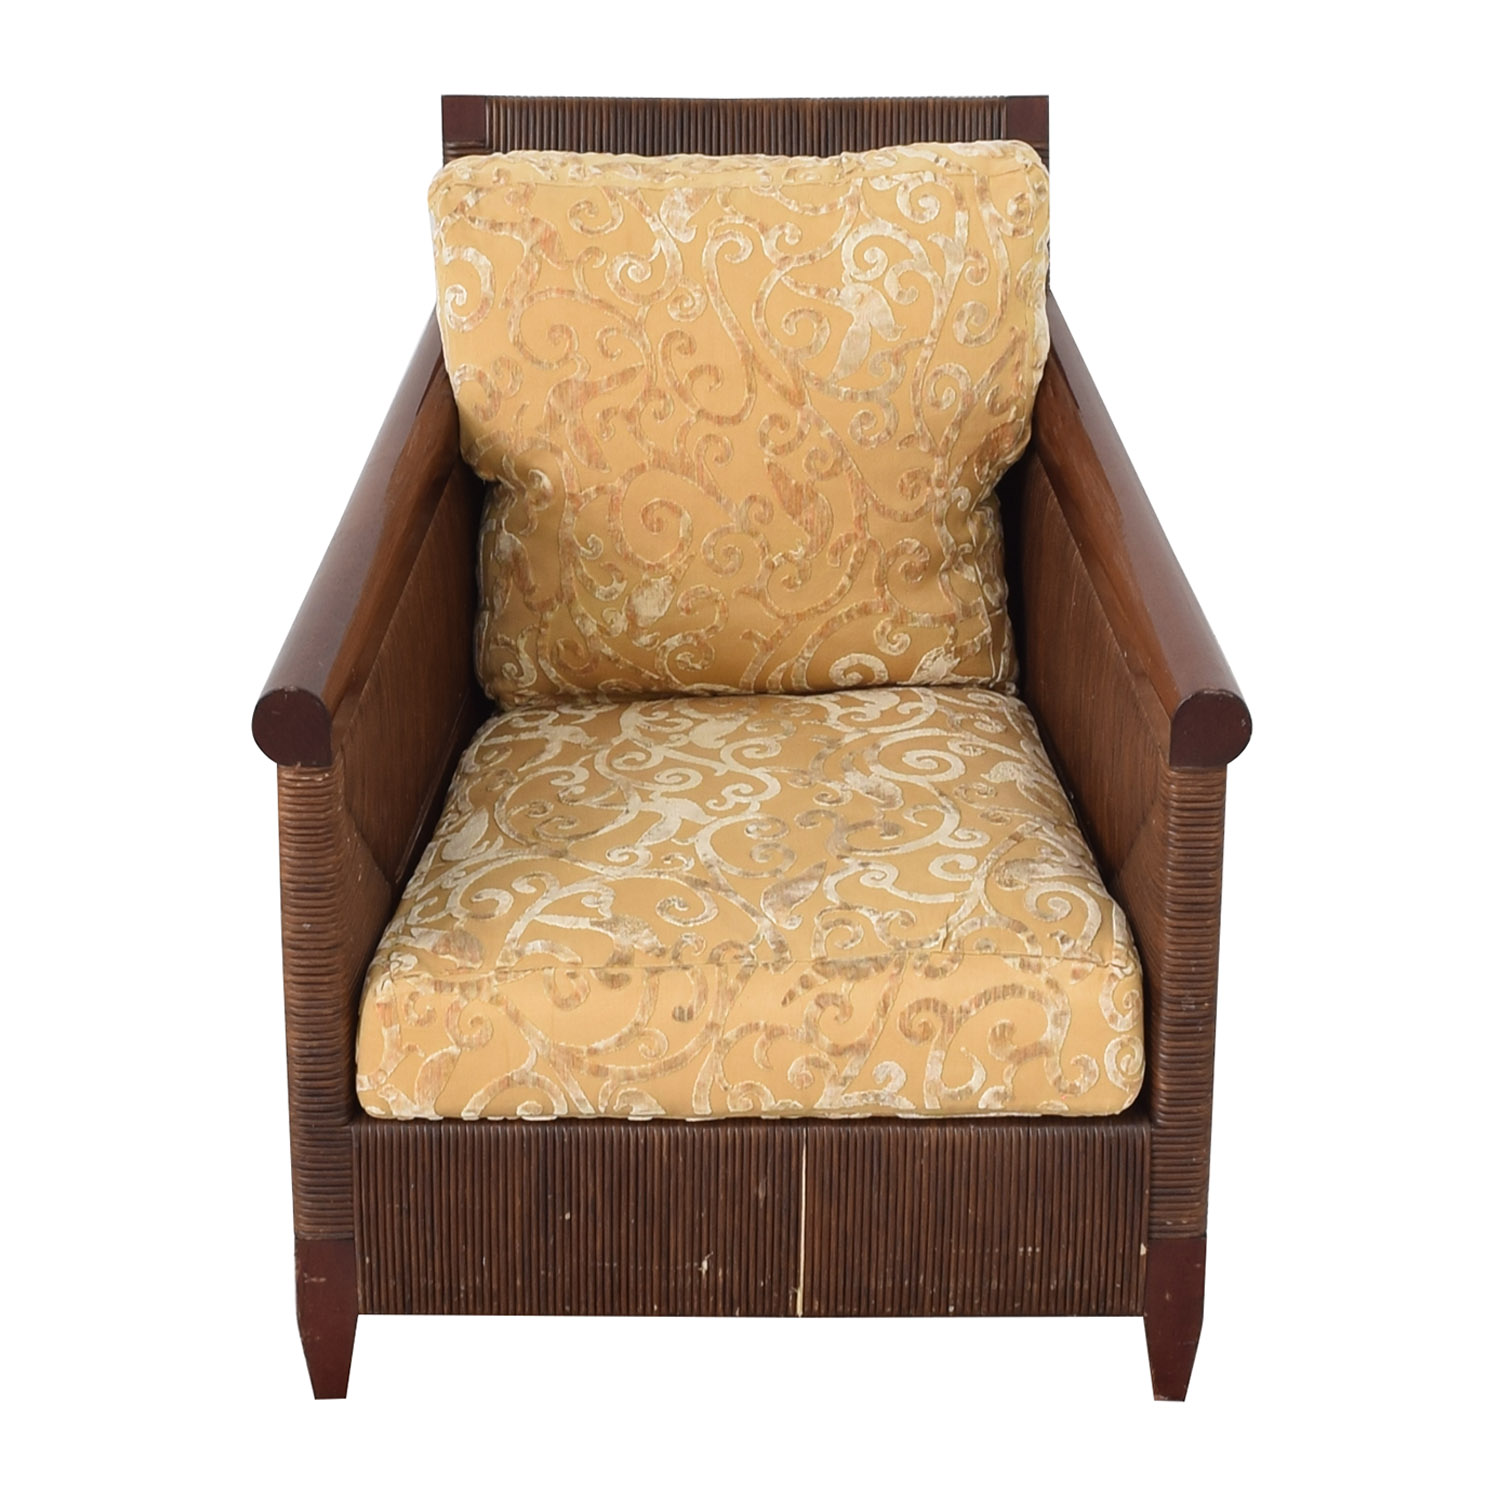 shop Donghia by John Hutton Mahogany and Wicker Lounger Donghia Accent Chairs